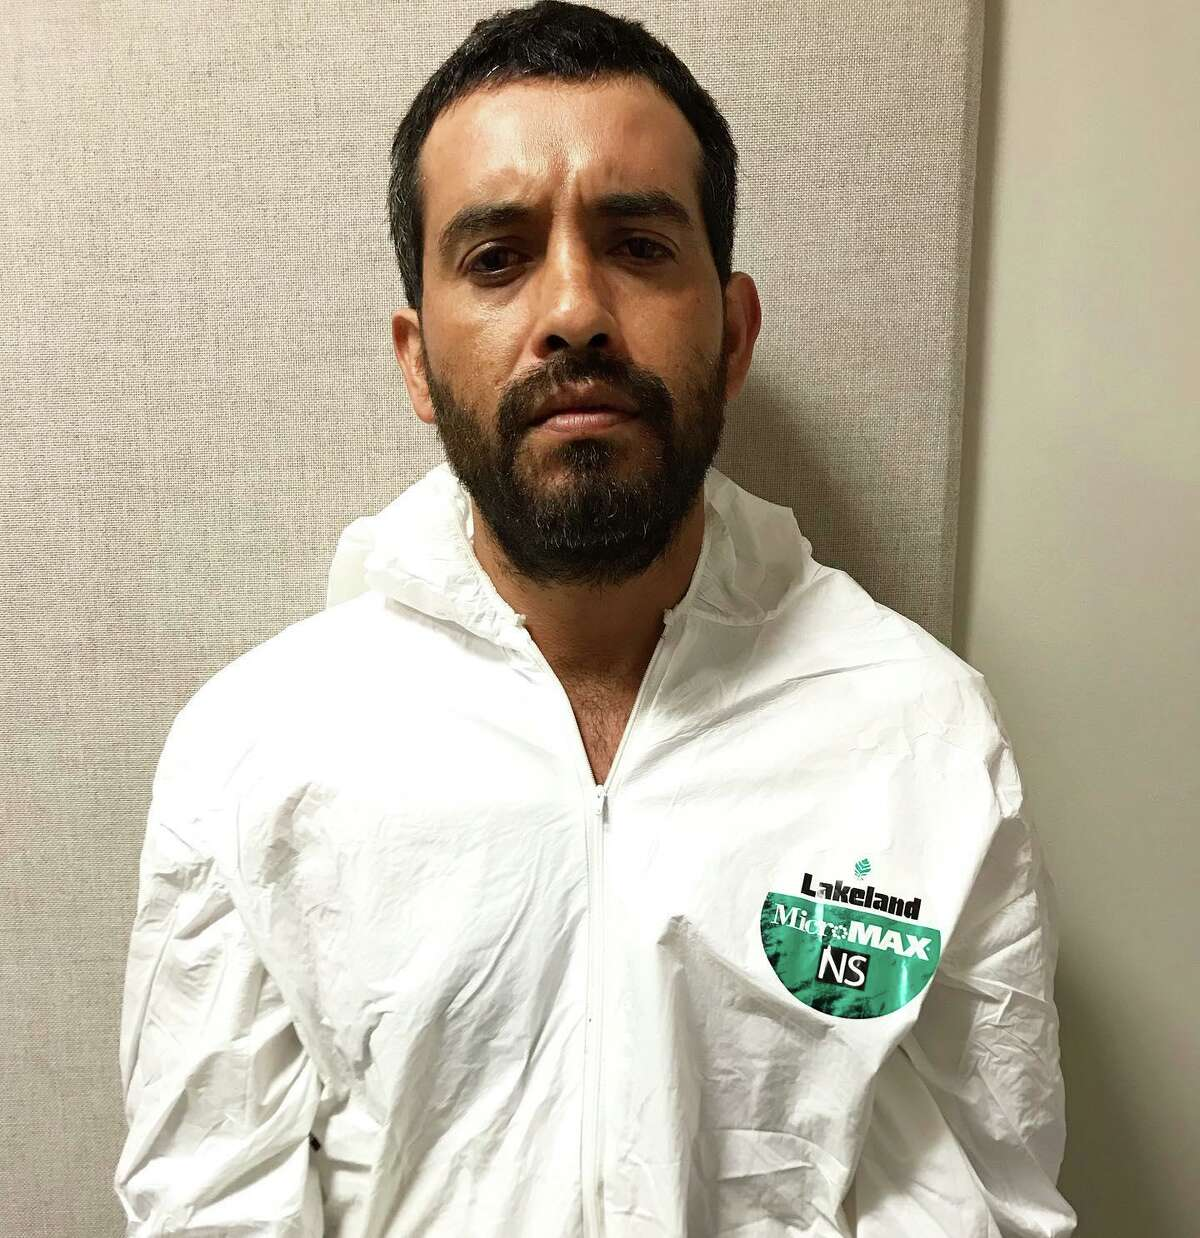 Miguel Garcia Gonzales, 32, confessed to murdering a 67-year-old man with a shovel in South Bexar County on Saturday, June 12.